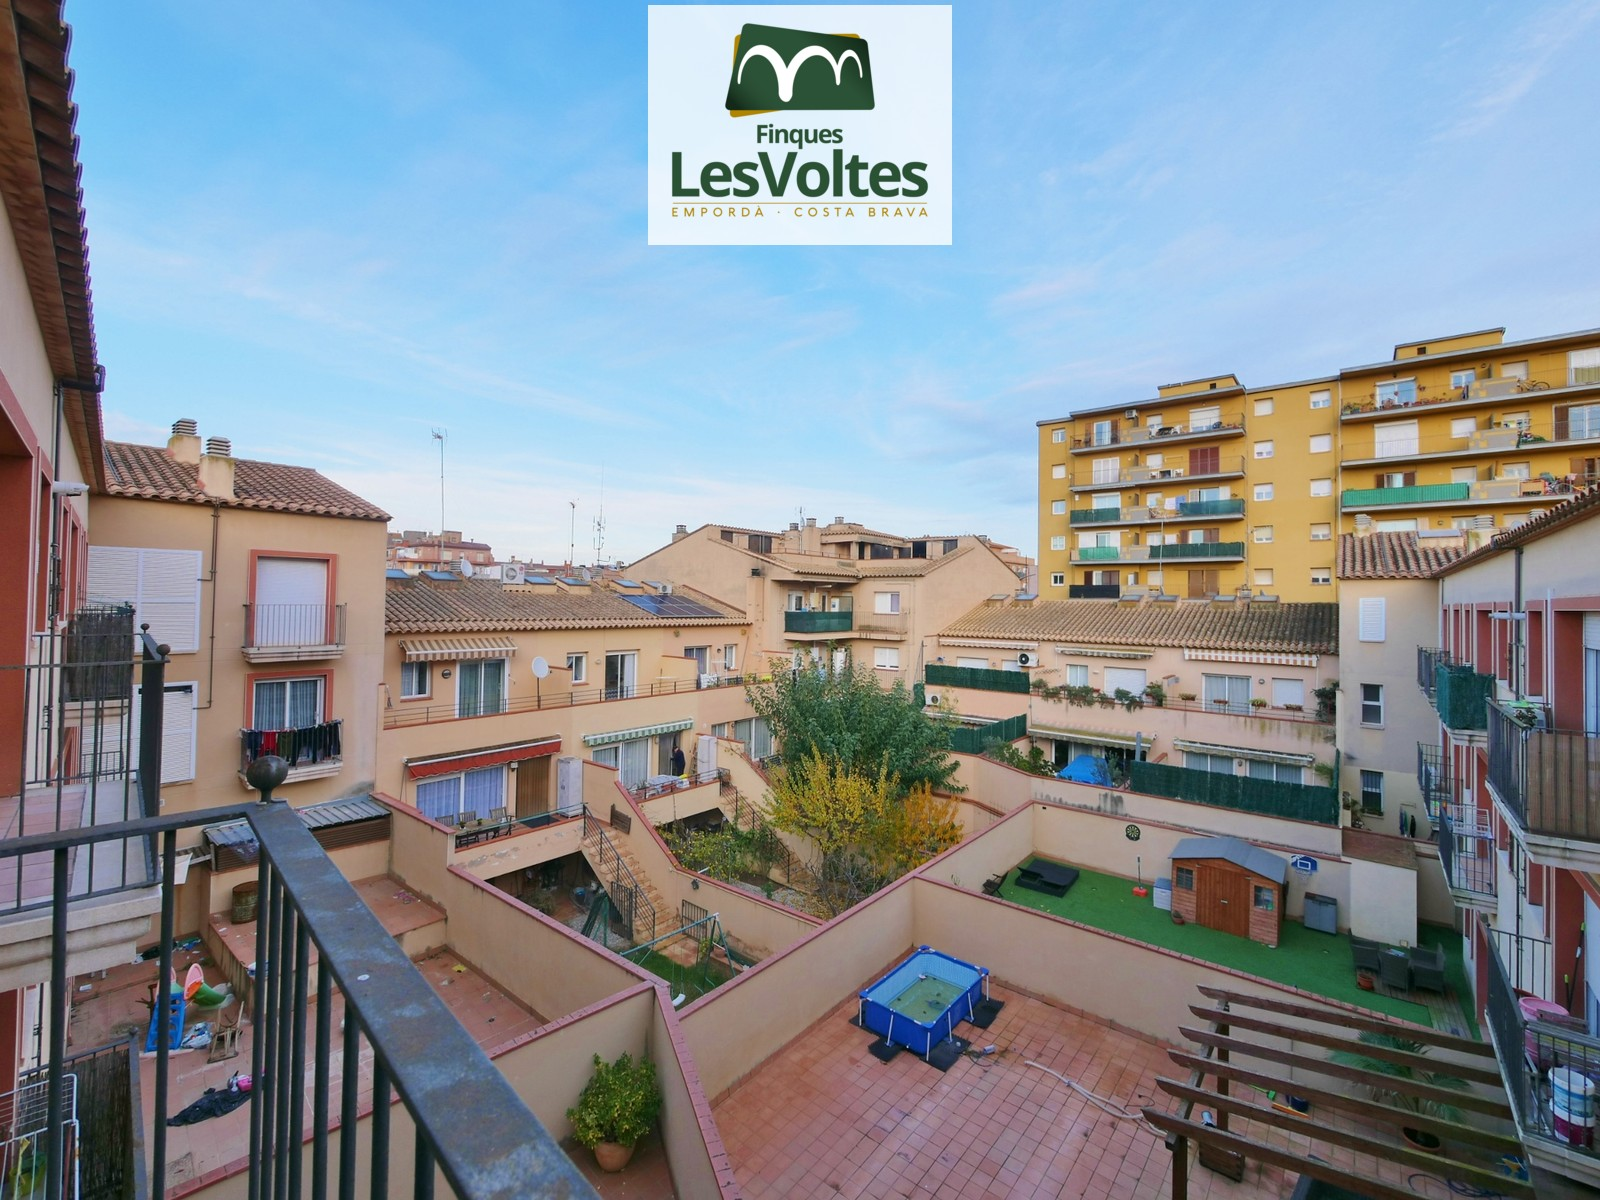 2 bedroom apartment for sale in Palafrugell. Residential area well connected to the center and with all services